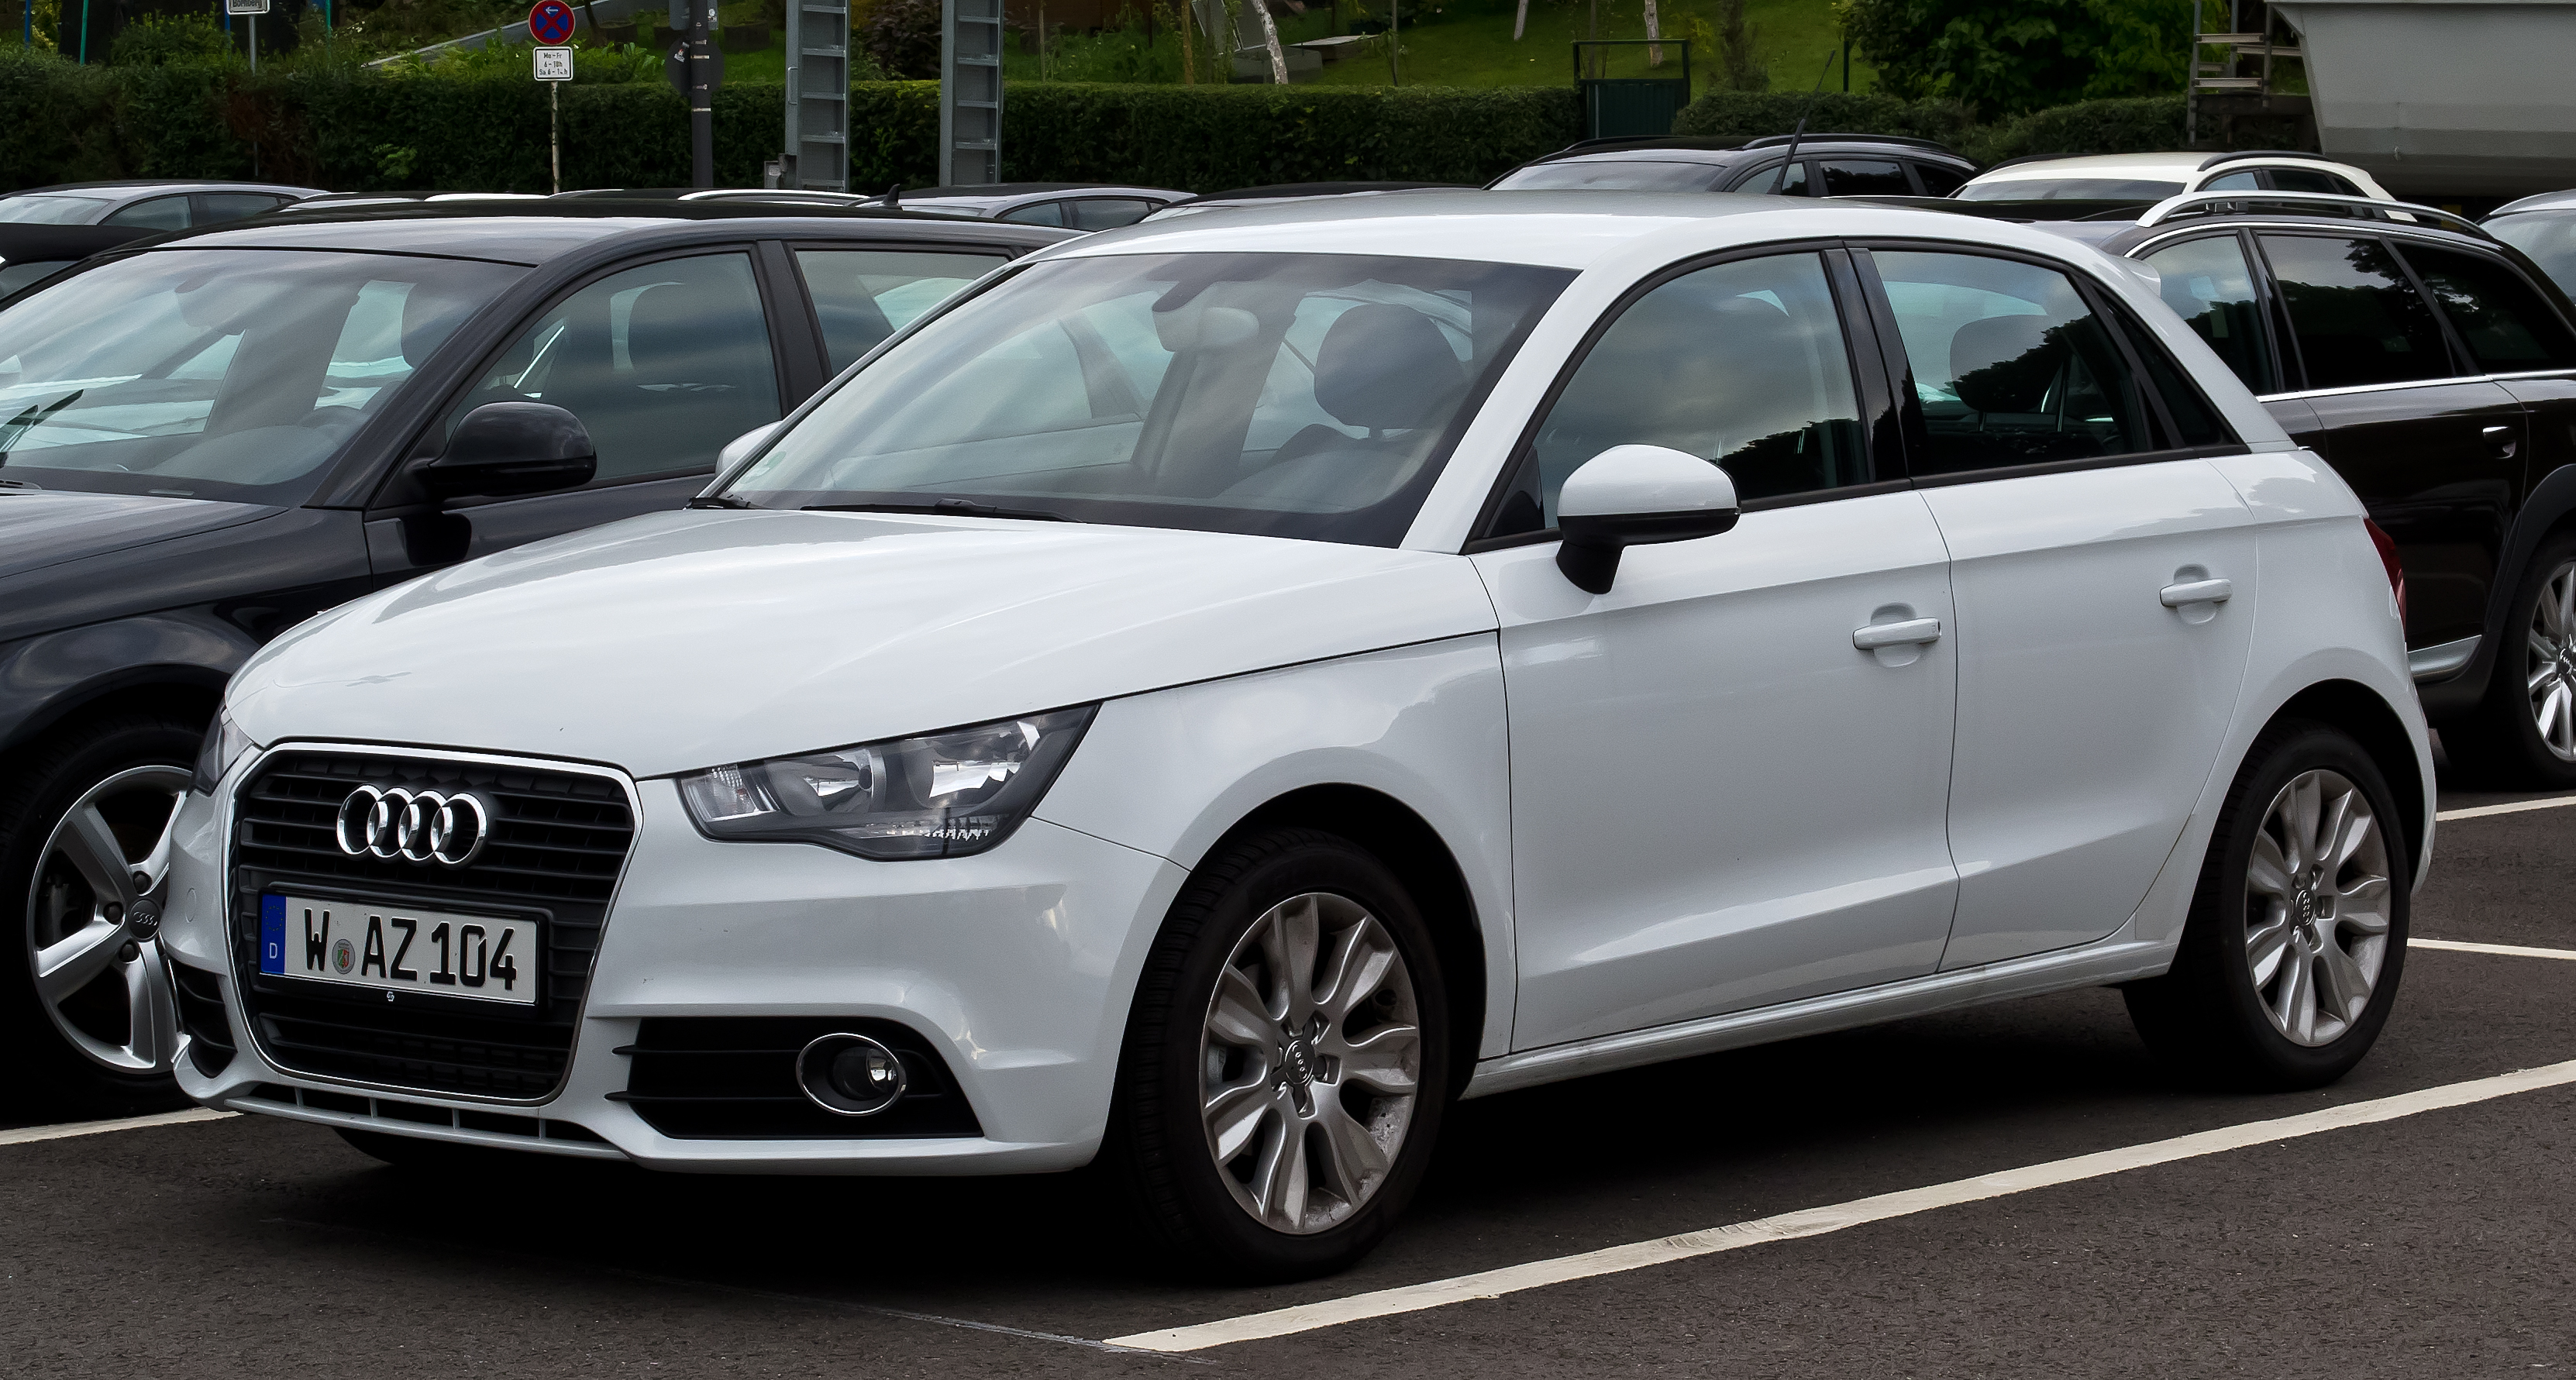 audi a1 sportback technical details history photos on better parts ltd. Black Bedroom Furniture Sets. Home Design Ideas